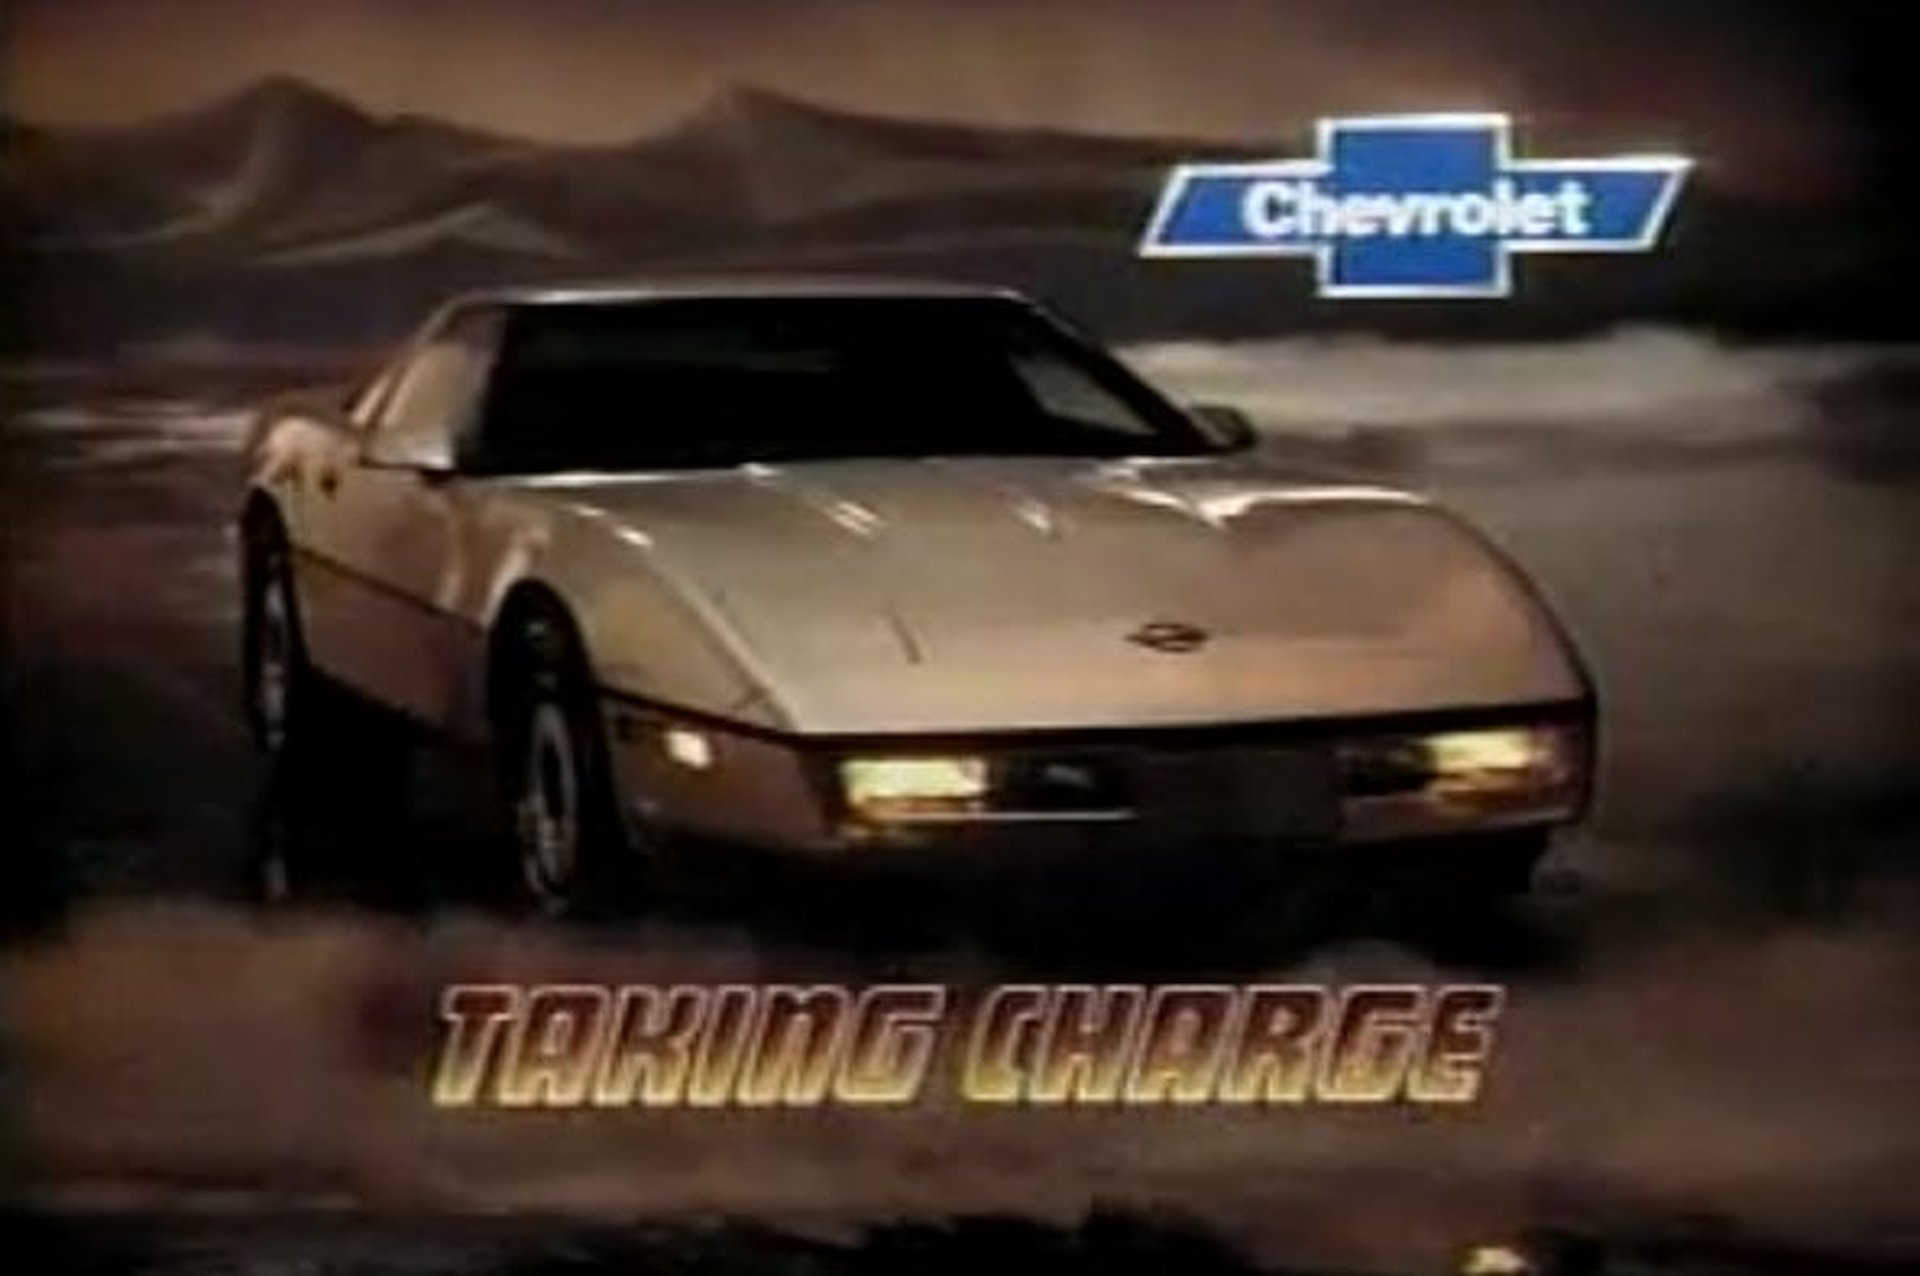 Retro Vid: Super Epic 1984 Chevrolet Corvette Commercial